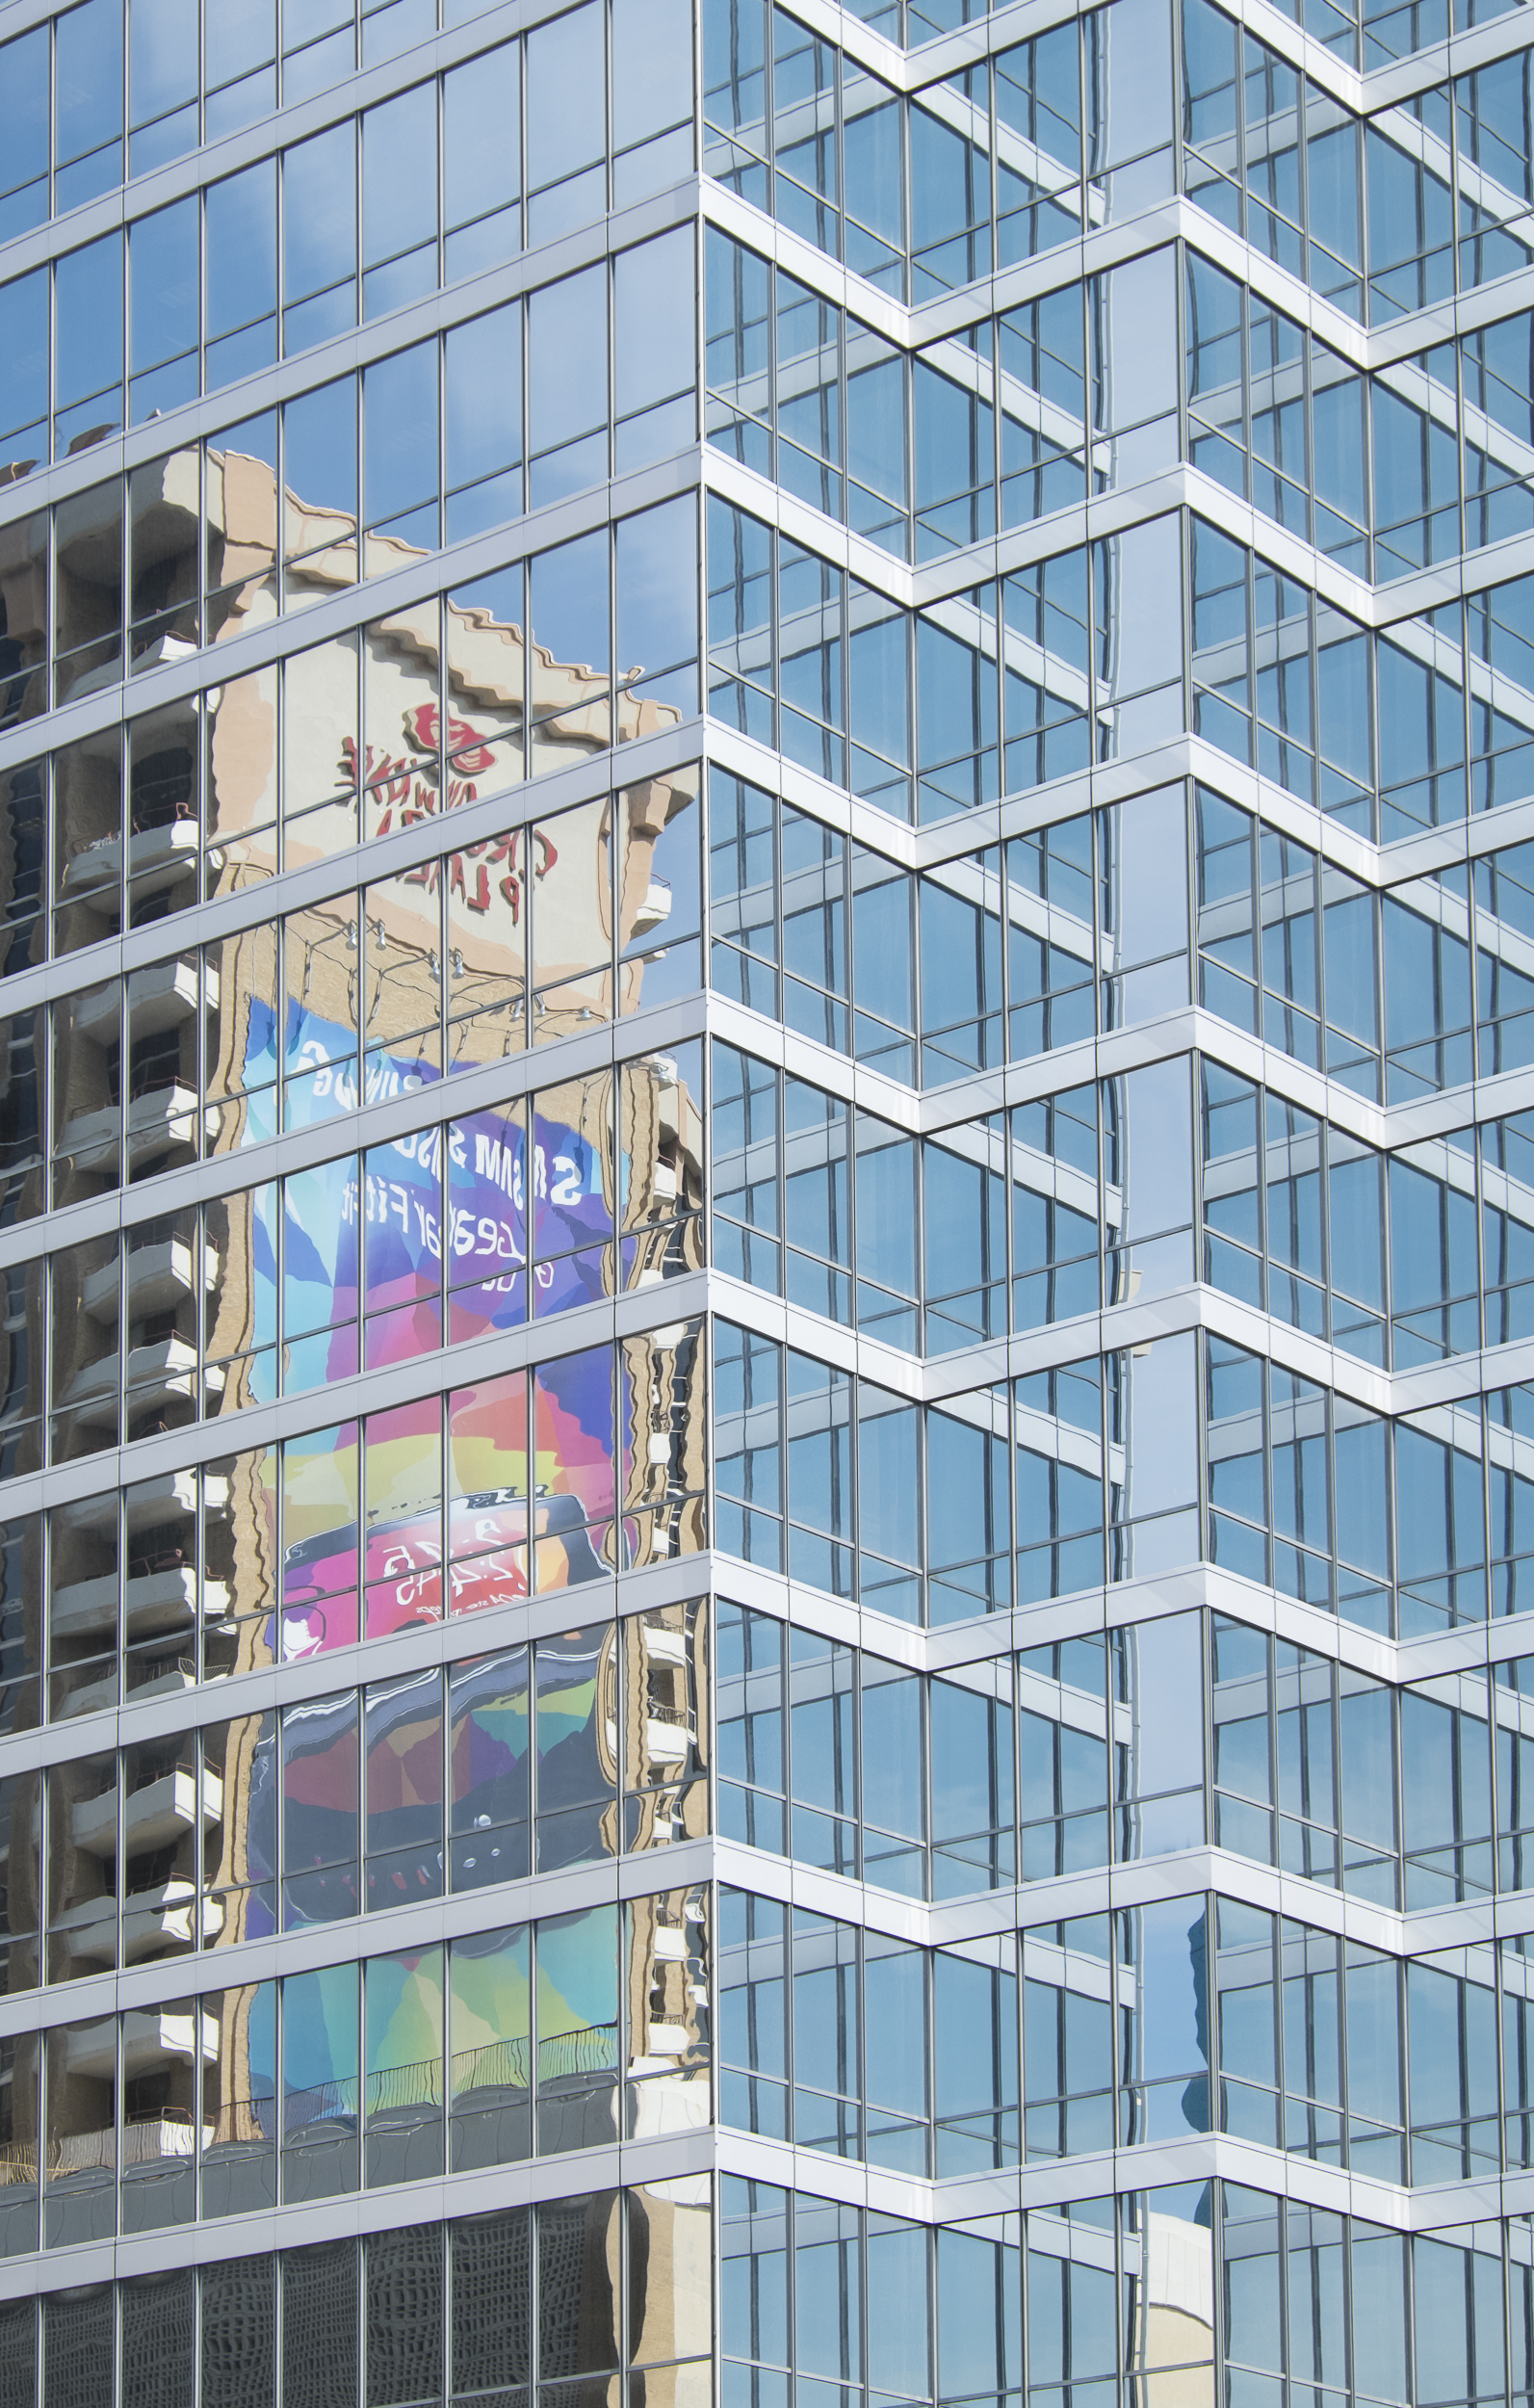 Dallas skyscraper provides colorful reflections. Copyright © Kipp Baker, All rights reserved.